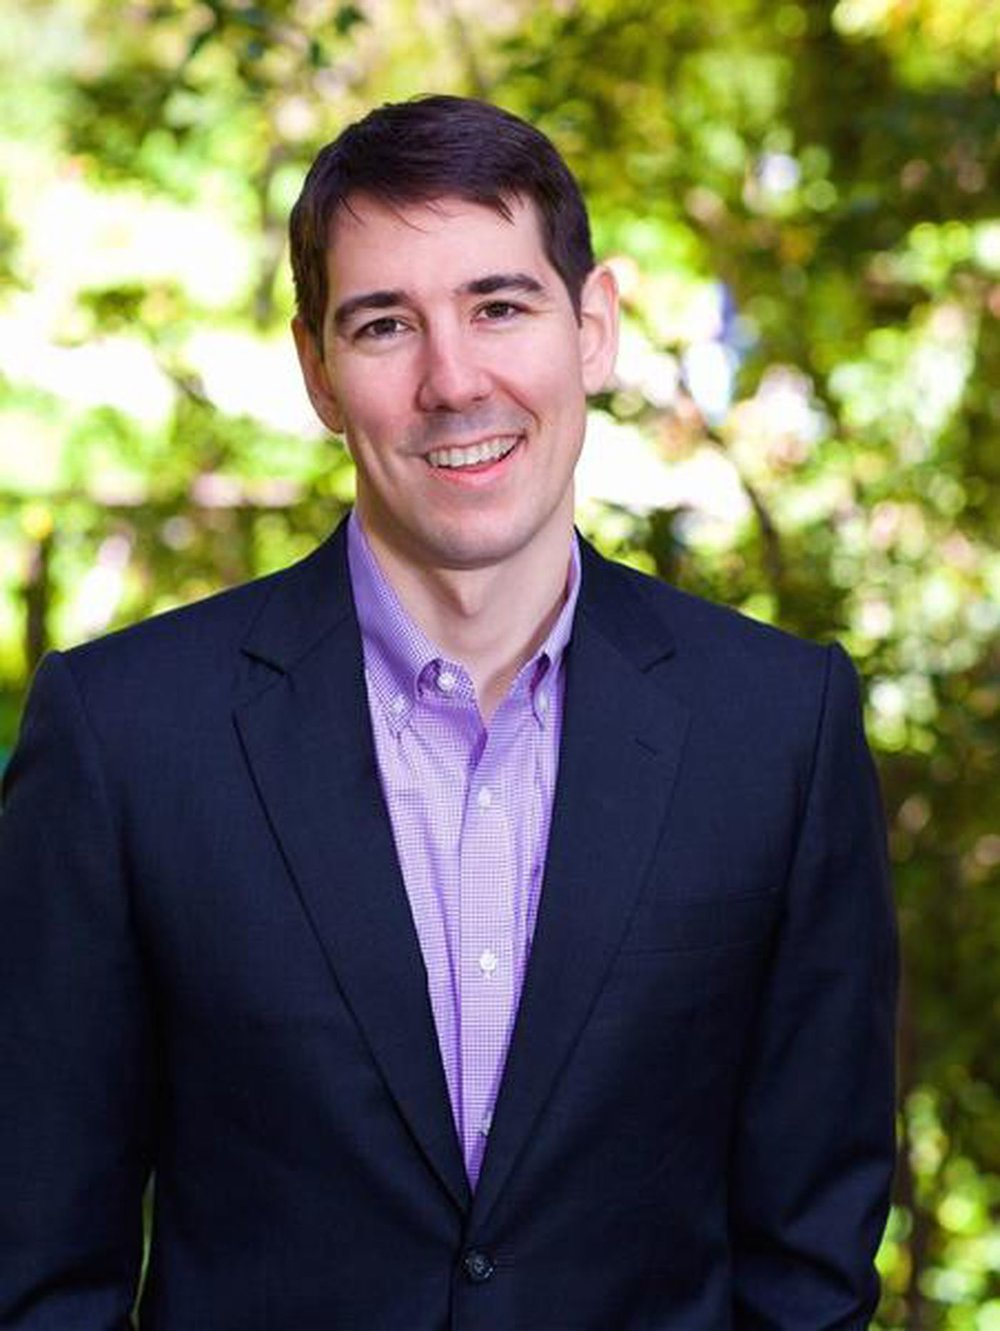 Josh Harder, CA-10   MBA | MPP | Former VP of investment firm   LinkedIn  |  Campaign site